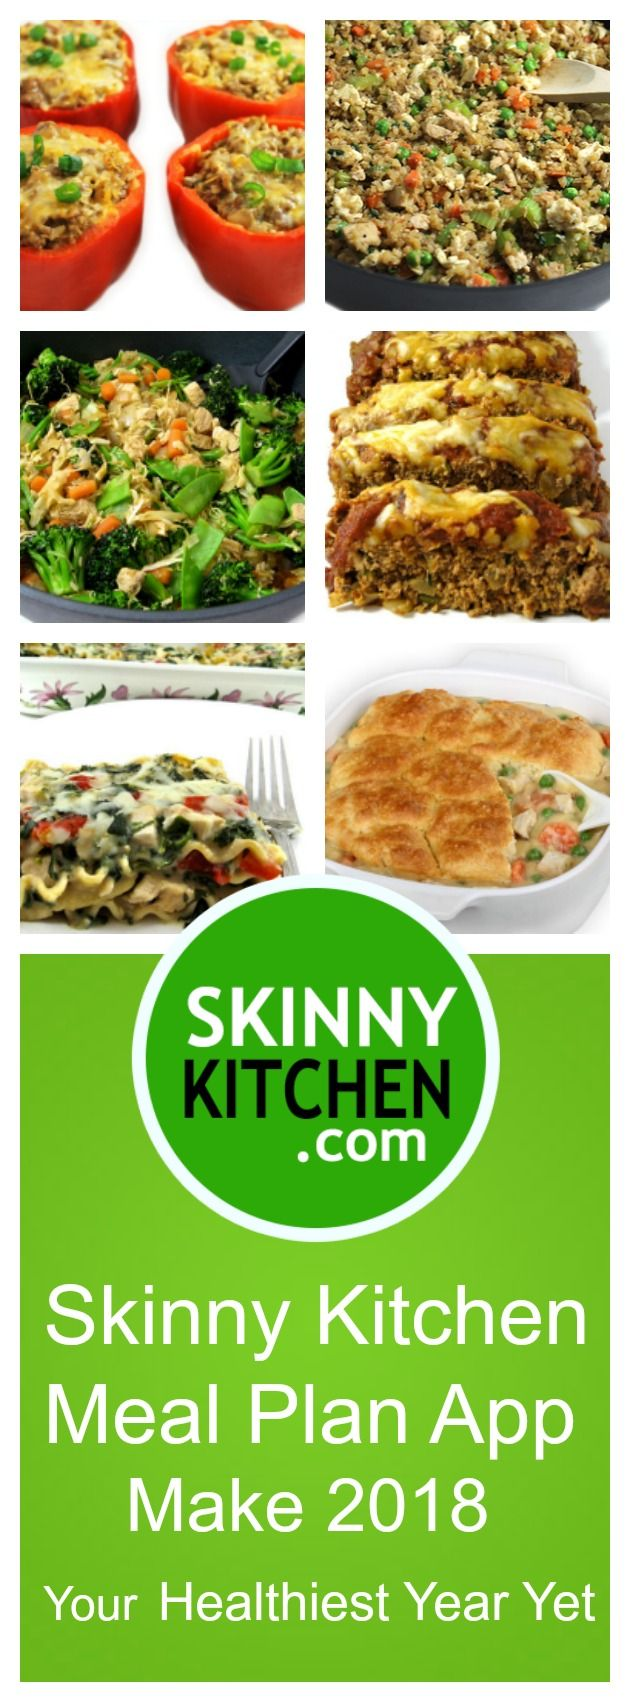 Make 2018 Your Healthiest Year Yet with Skinny Kitchen Meal Plan App. If you're like me you've probably over done it this holiday season and can't wait to eat healthy again, right? Or maybe you've been struggling with your weight and need some help or just want a plan to help you and your family eat healthier? Check out Skinny Kitchen Weight Loss Meal Plan App. https://www.skinnykitchen.com/recipes/make-2018-your-healthiest-year-yet-with-skinny-kitchen-meal-plan-app/